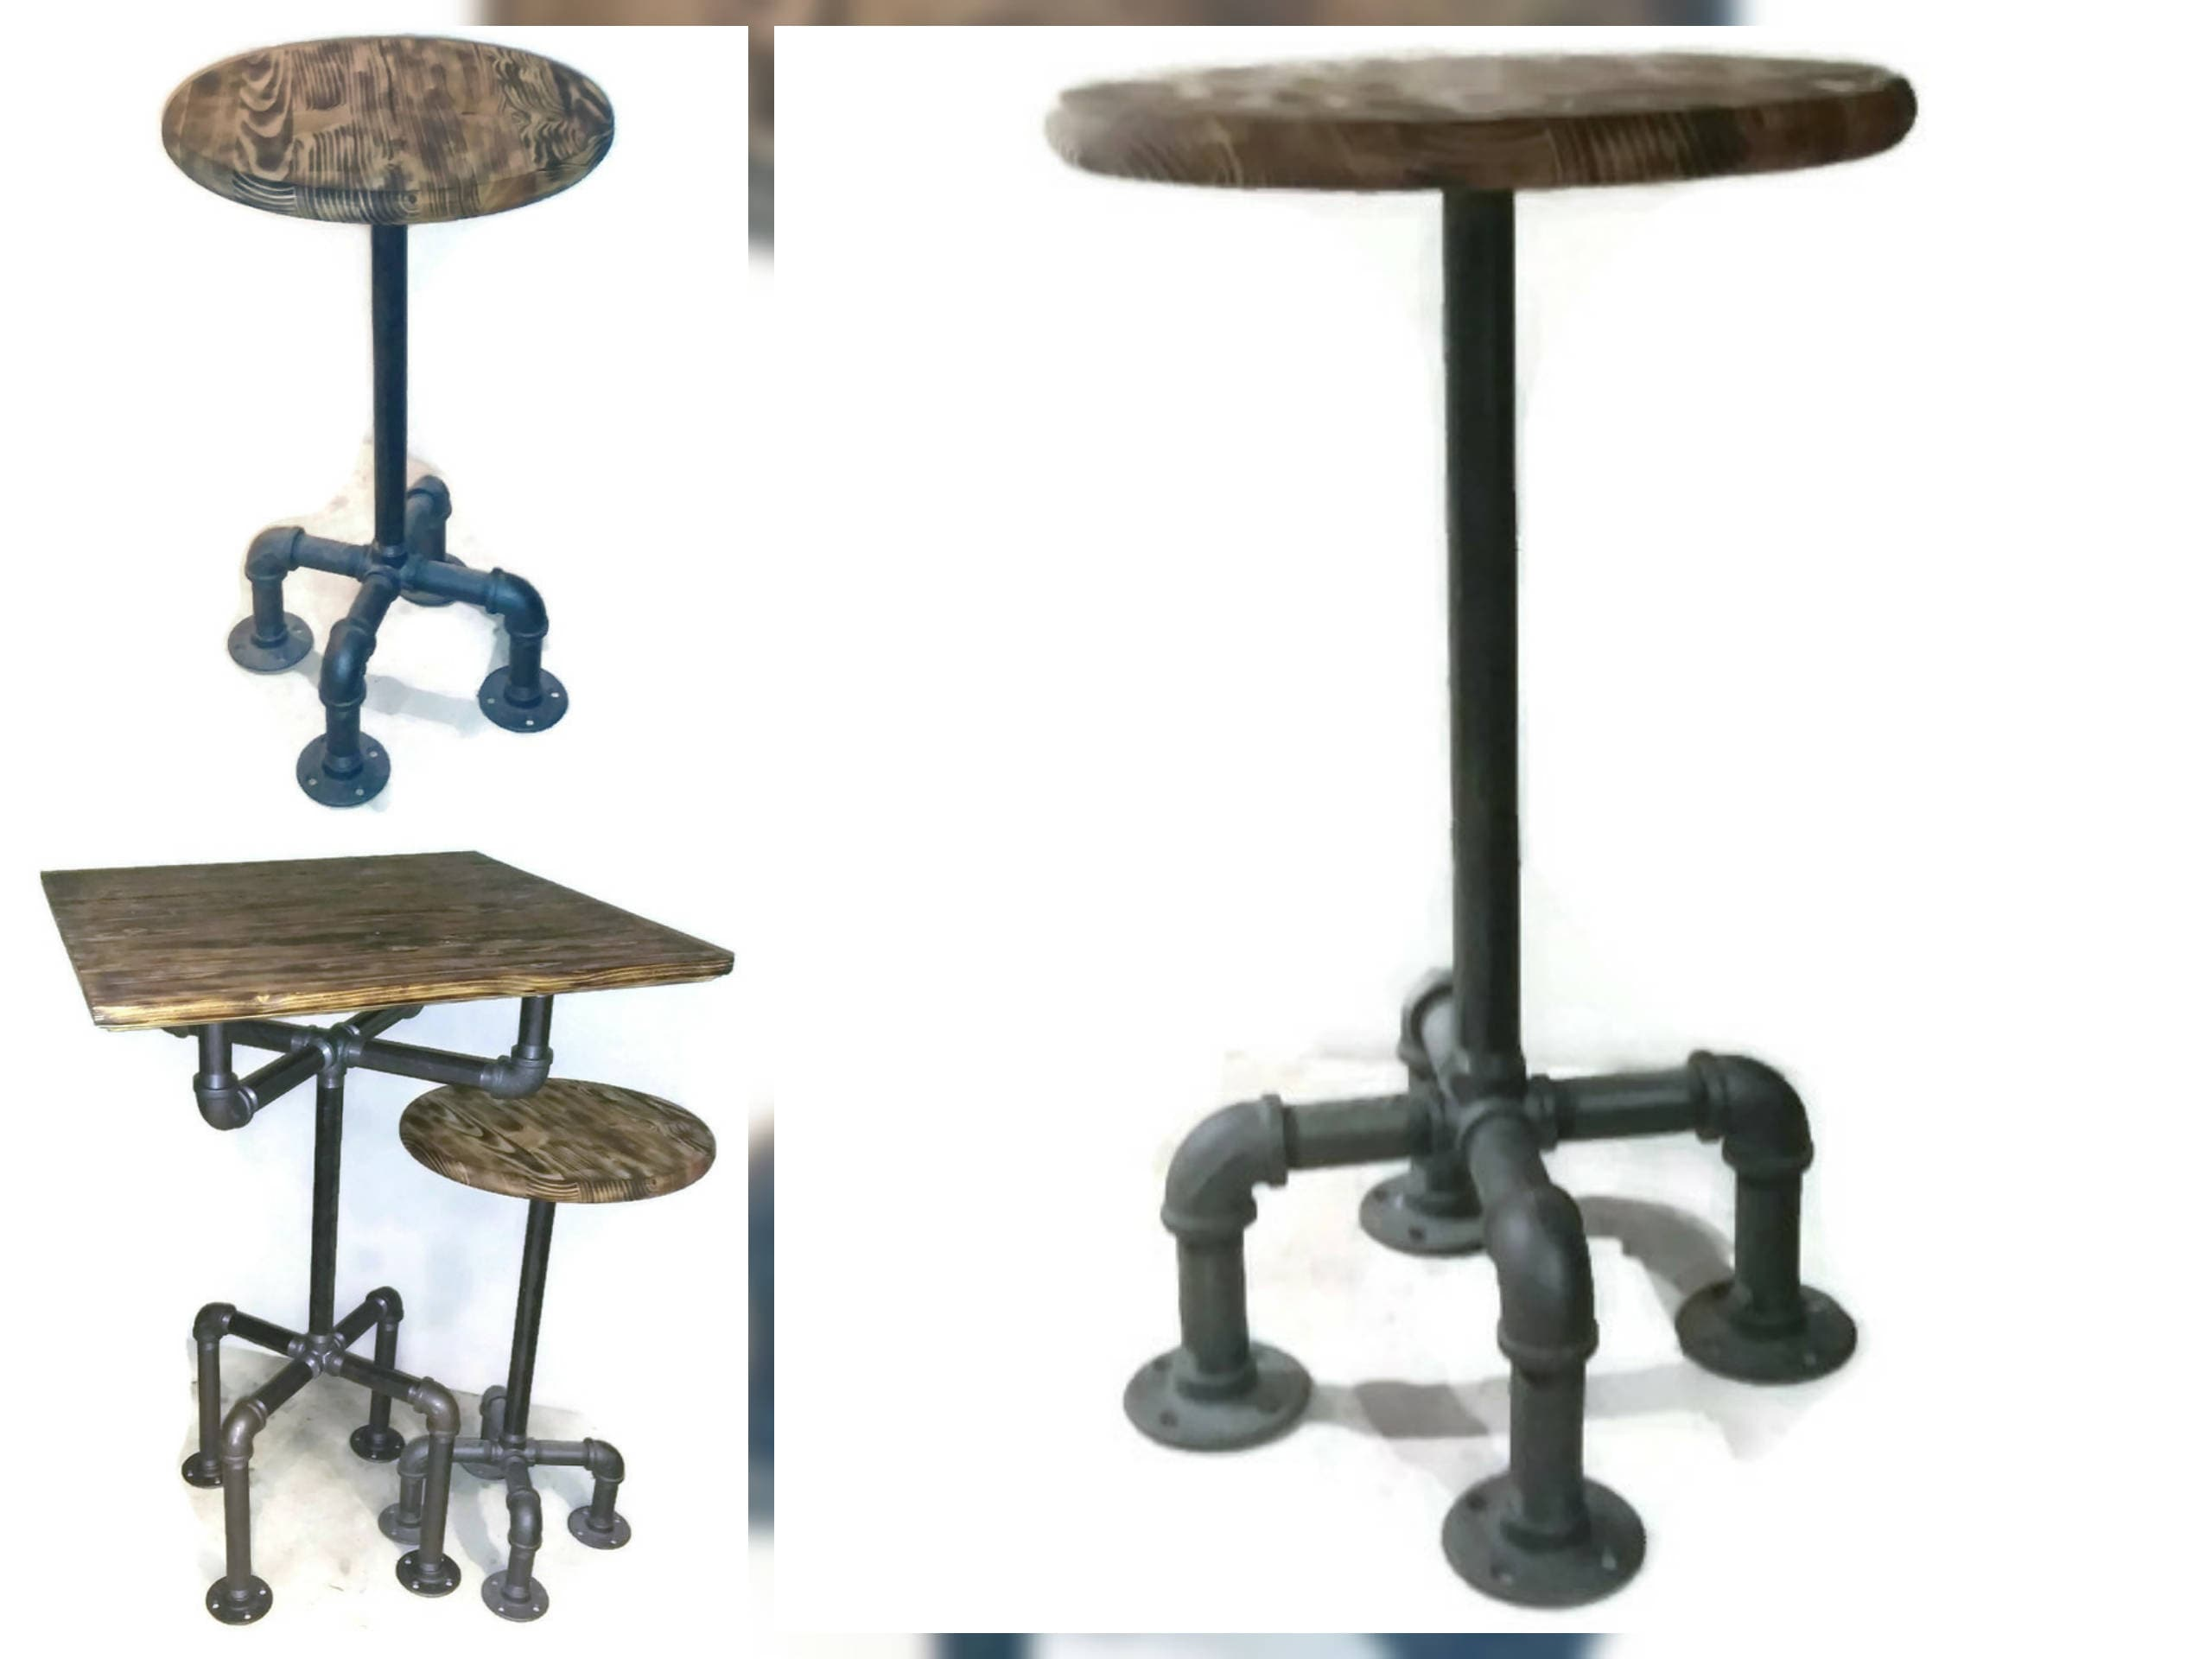 Remarkable Pipe Bar Stool Tx46 Advancedmassagebysara Creativecarmelina Interior Chair Design Creativecarmelinacom